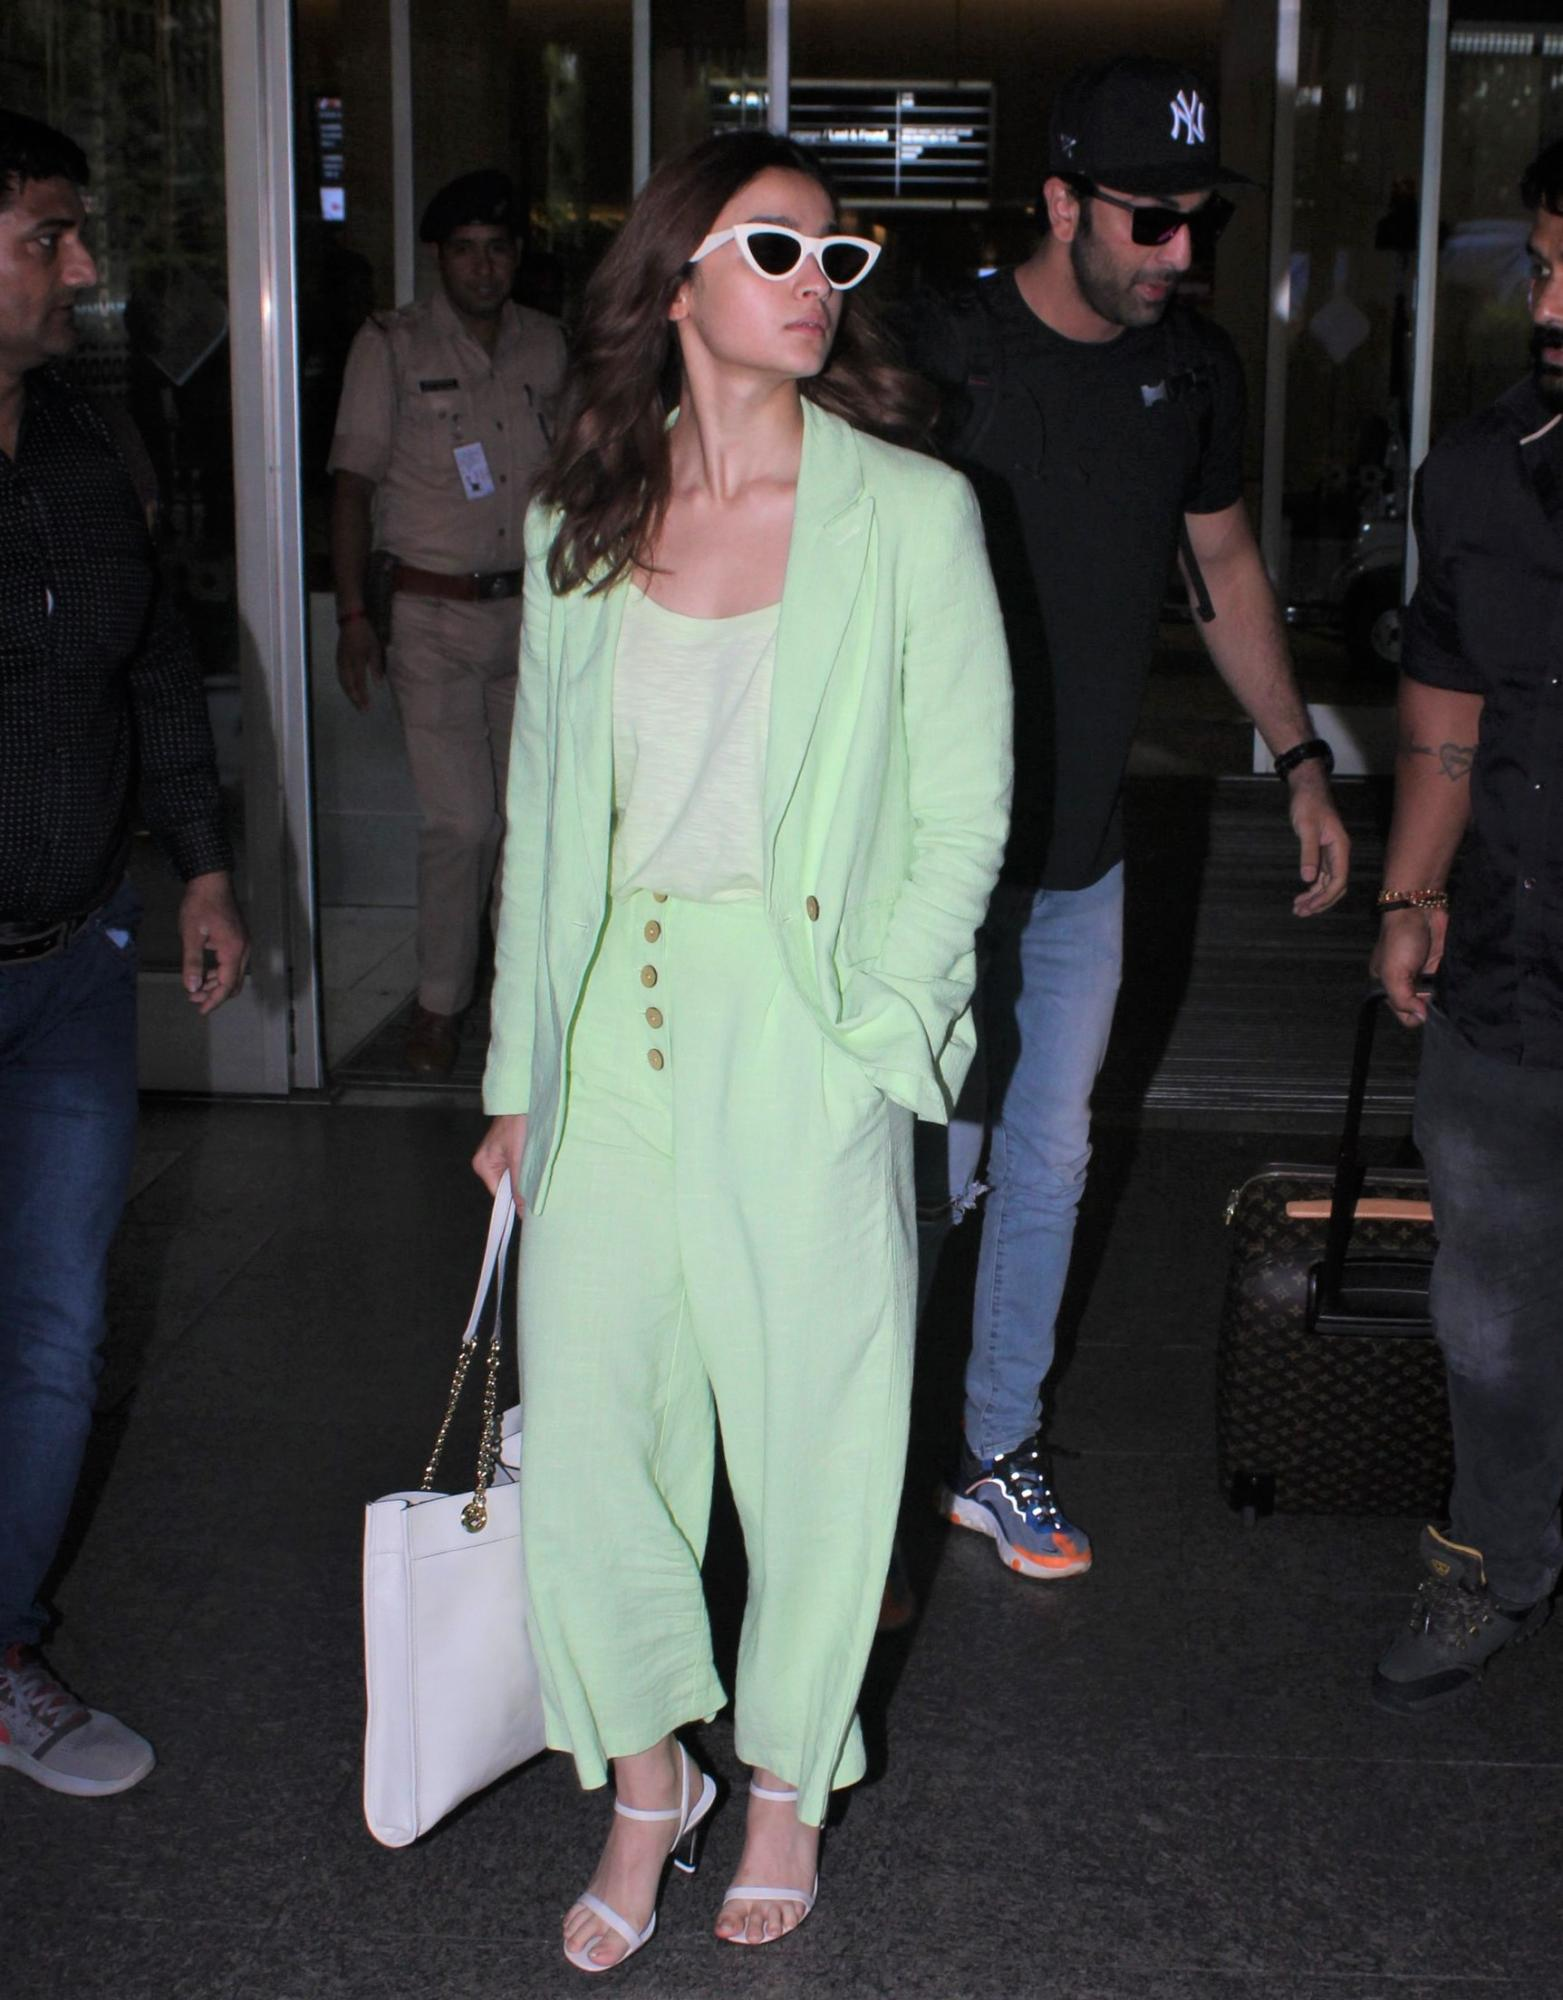 Alia Bhatt spotted at the airport recently